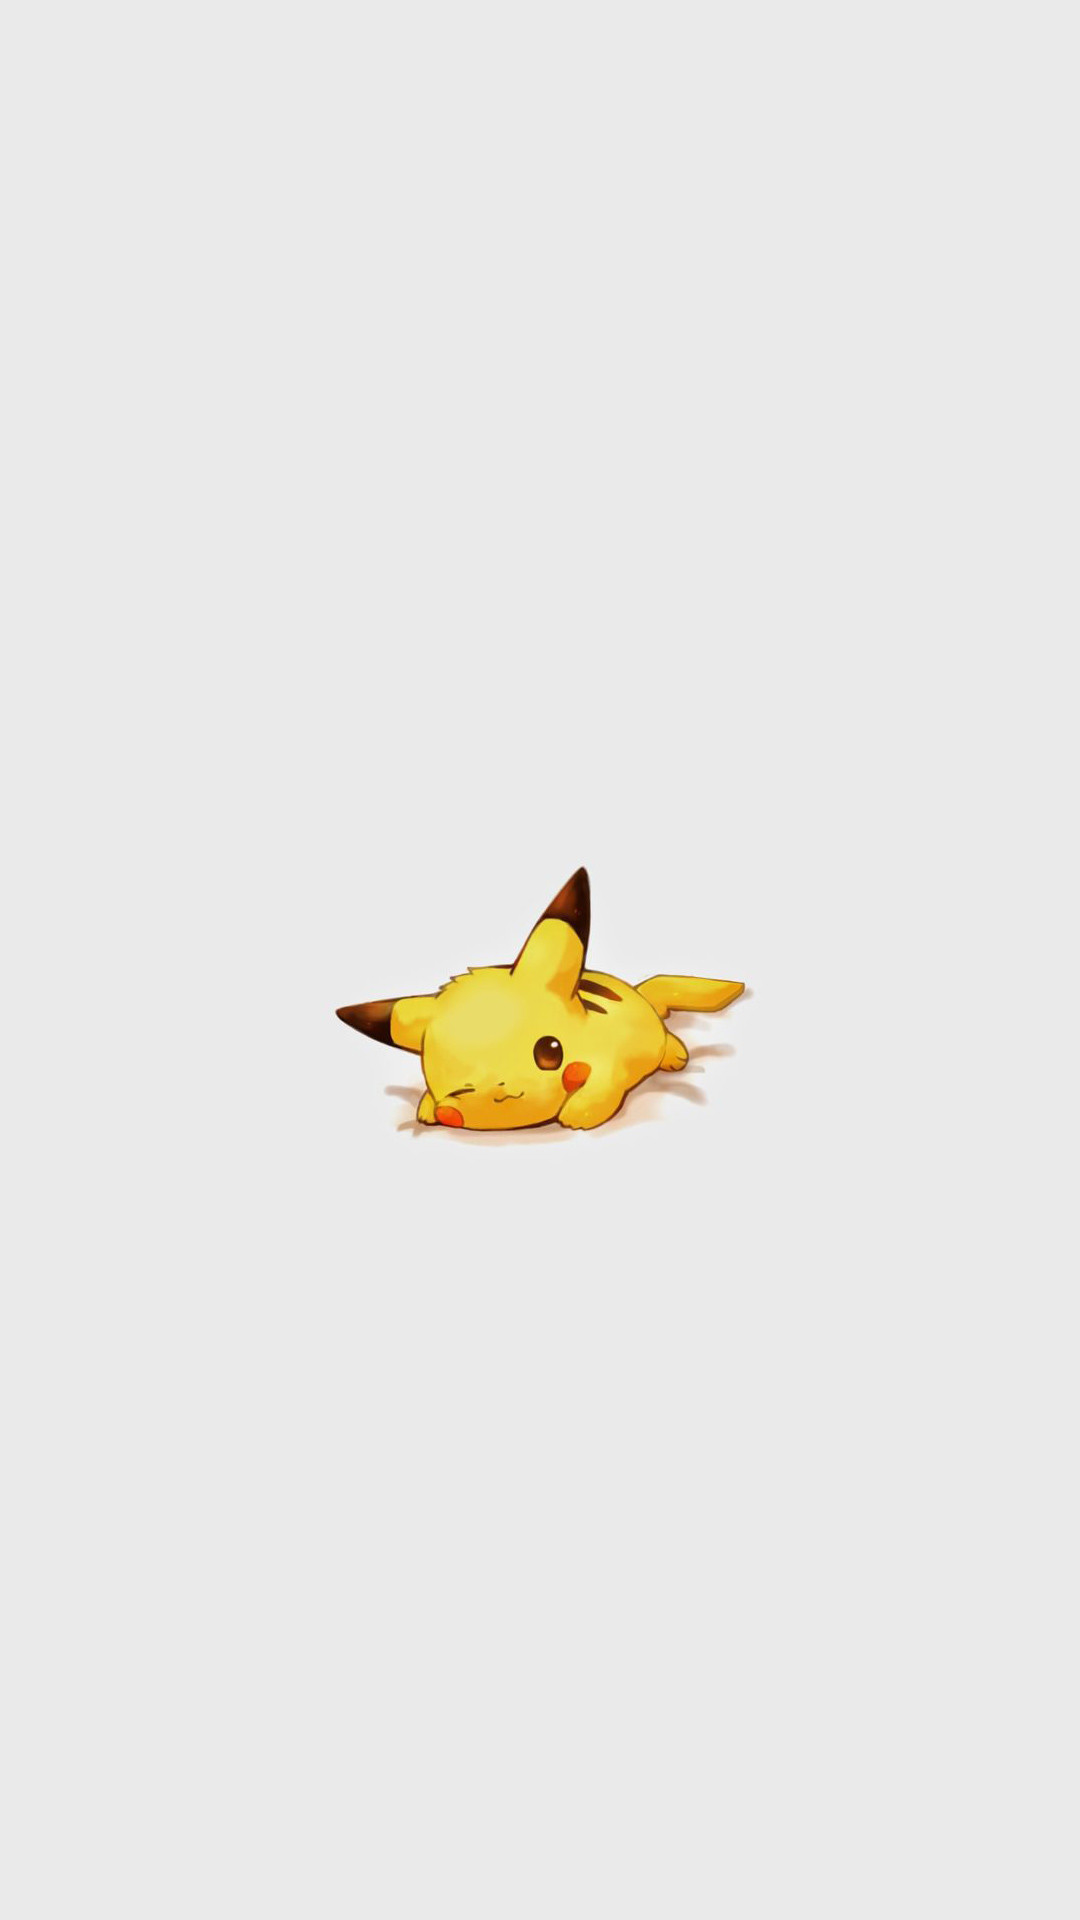 1080x1920 Cute Pikachu Pokemon GO Illustration Android Wallpaper